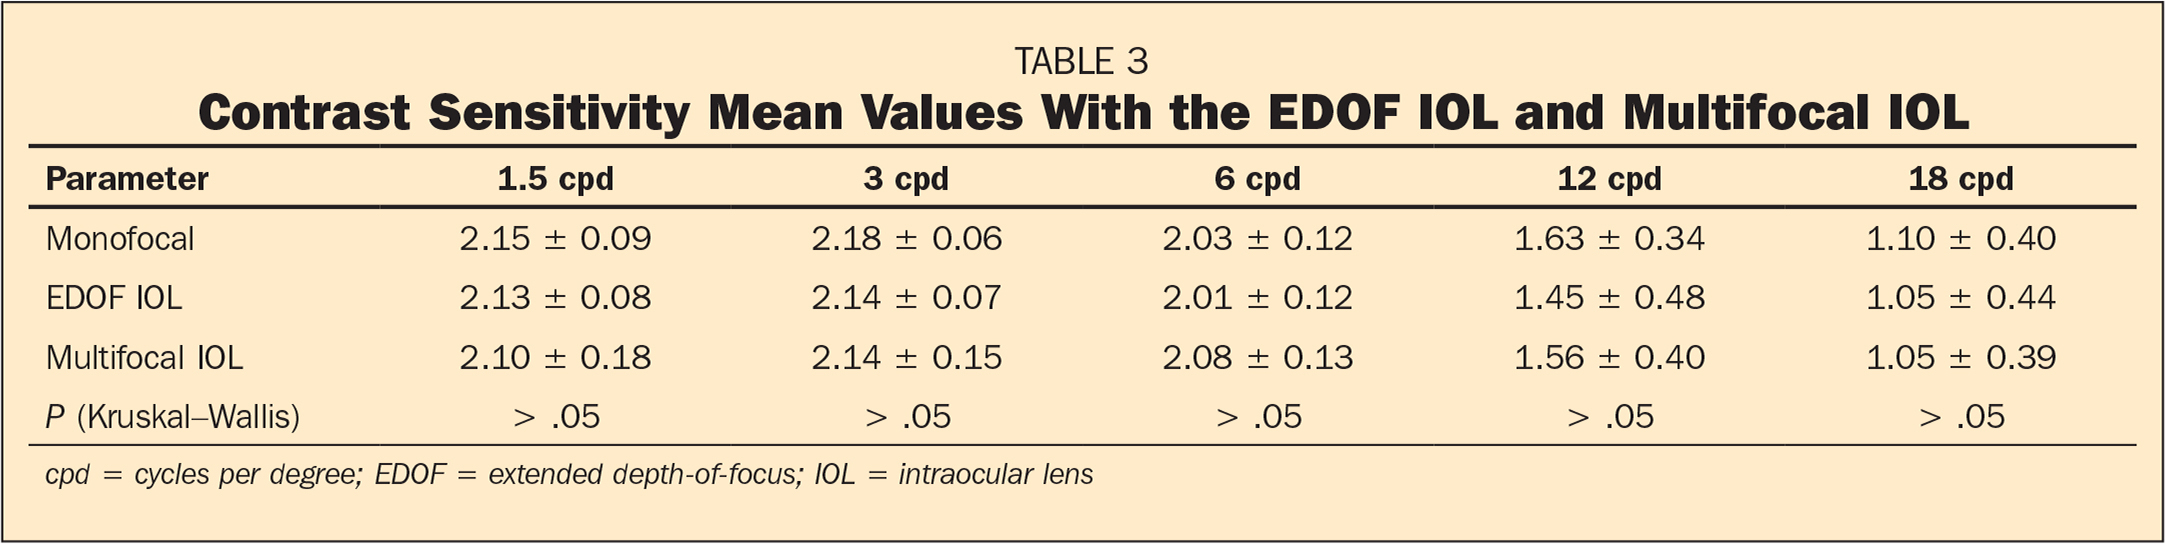 Contrast Sensitivity Mean Values With the EDOF IOL and Multifocal IOL